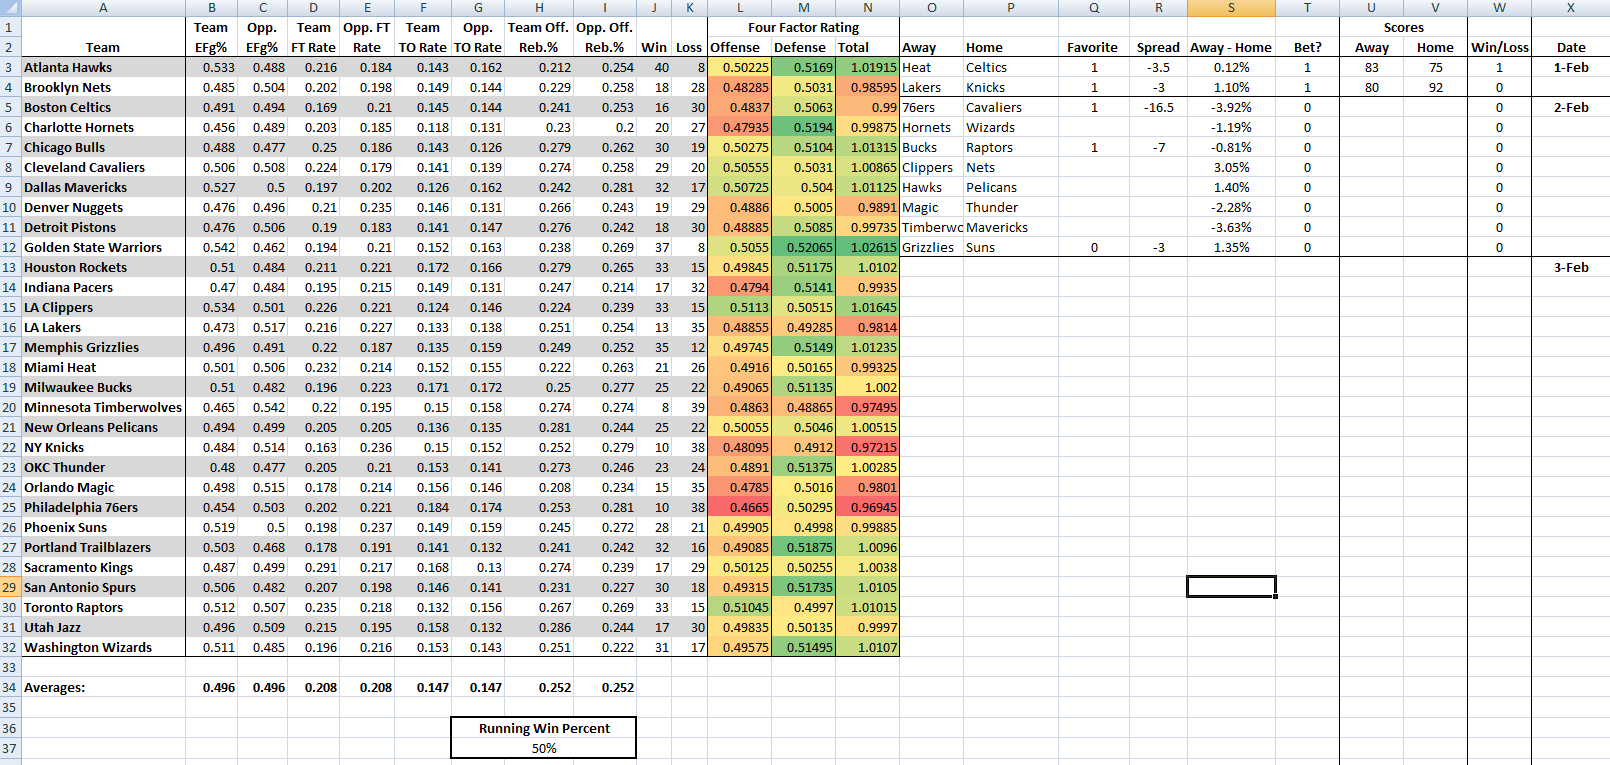 Nba Betting Spreadsheet With Simple Model Guide Excel : Sportsbook